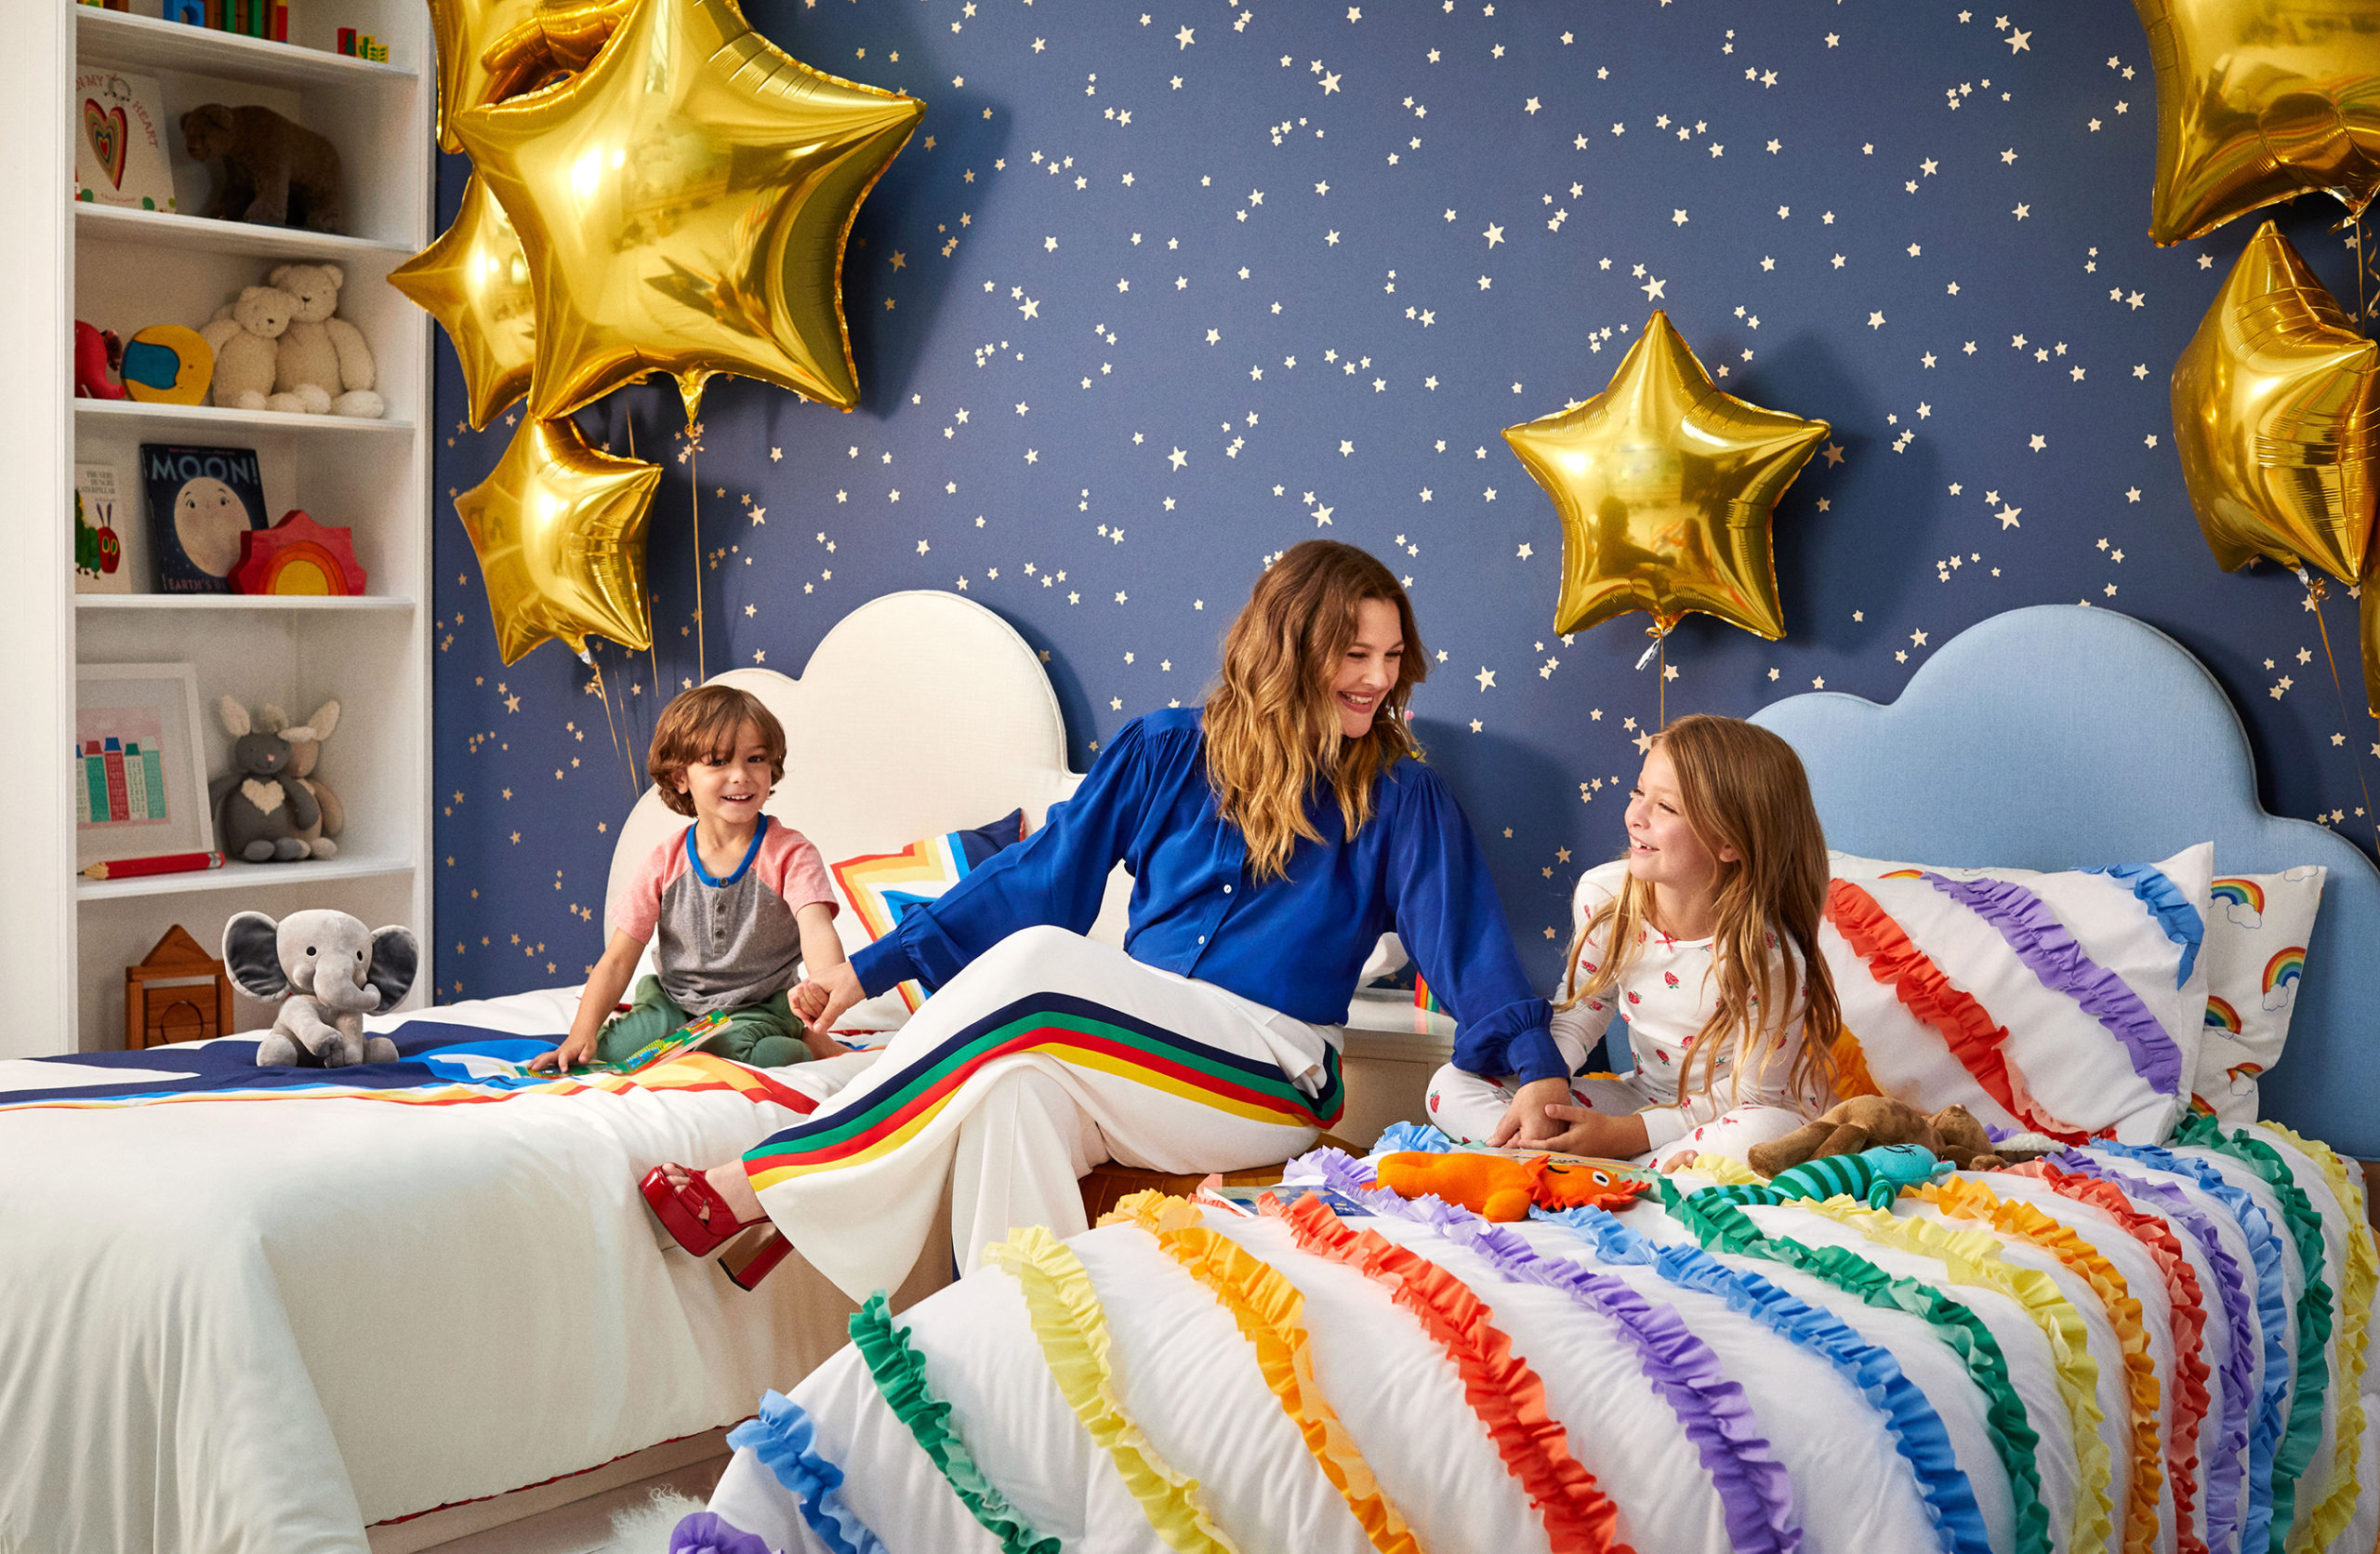 Drew Barrymore Launches a New Paint Collection at Walmart